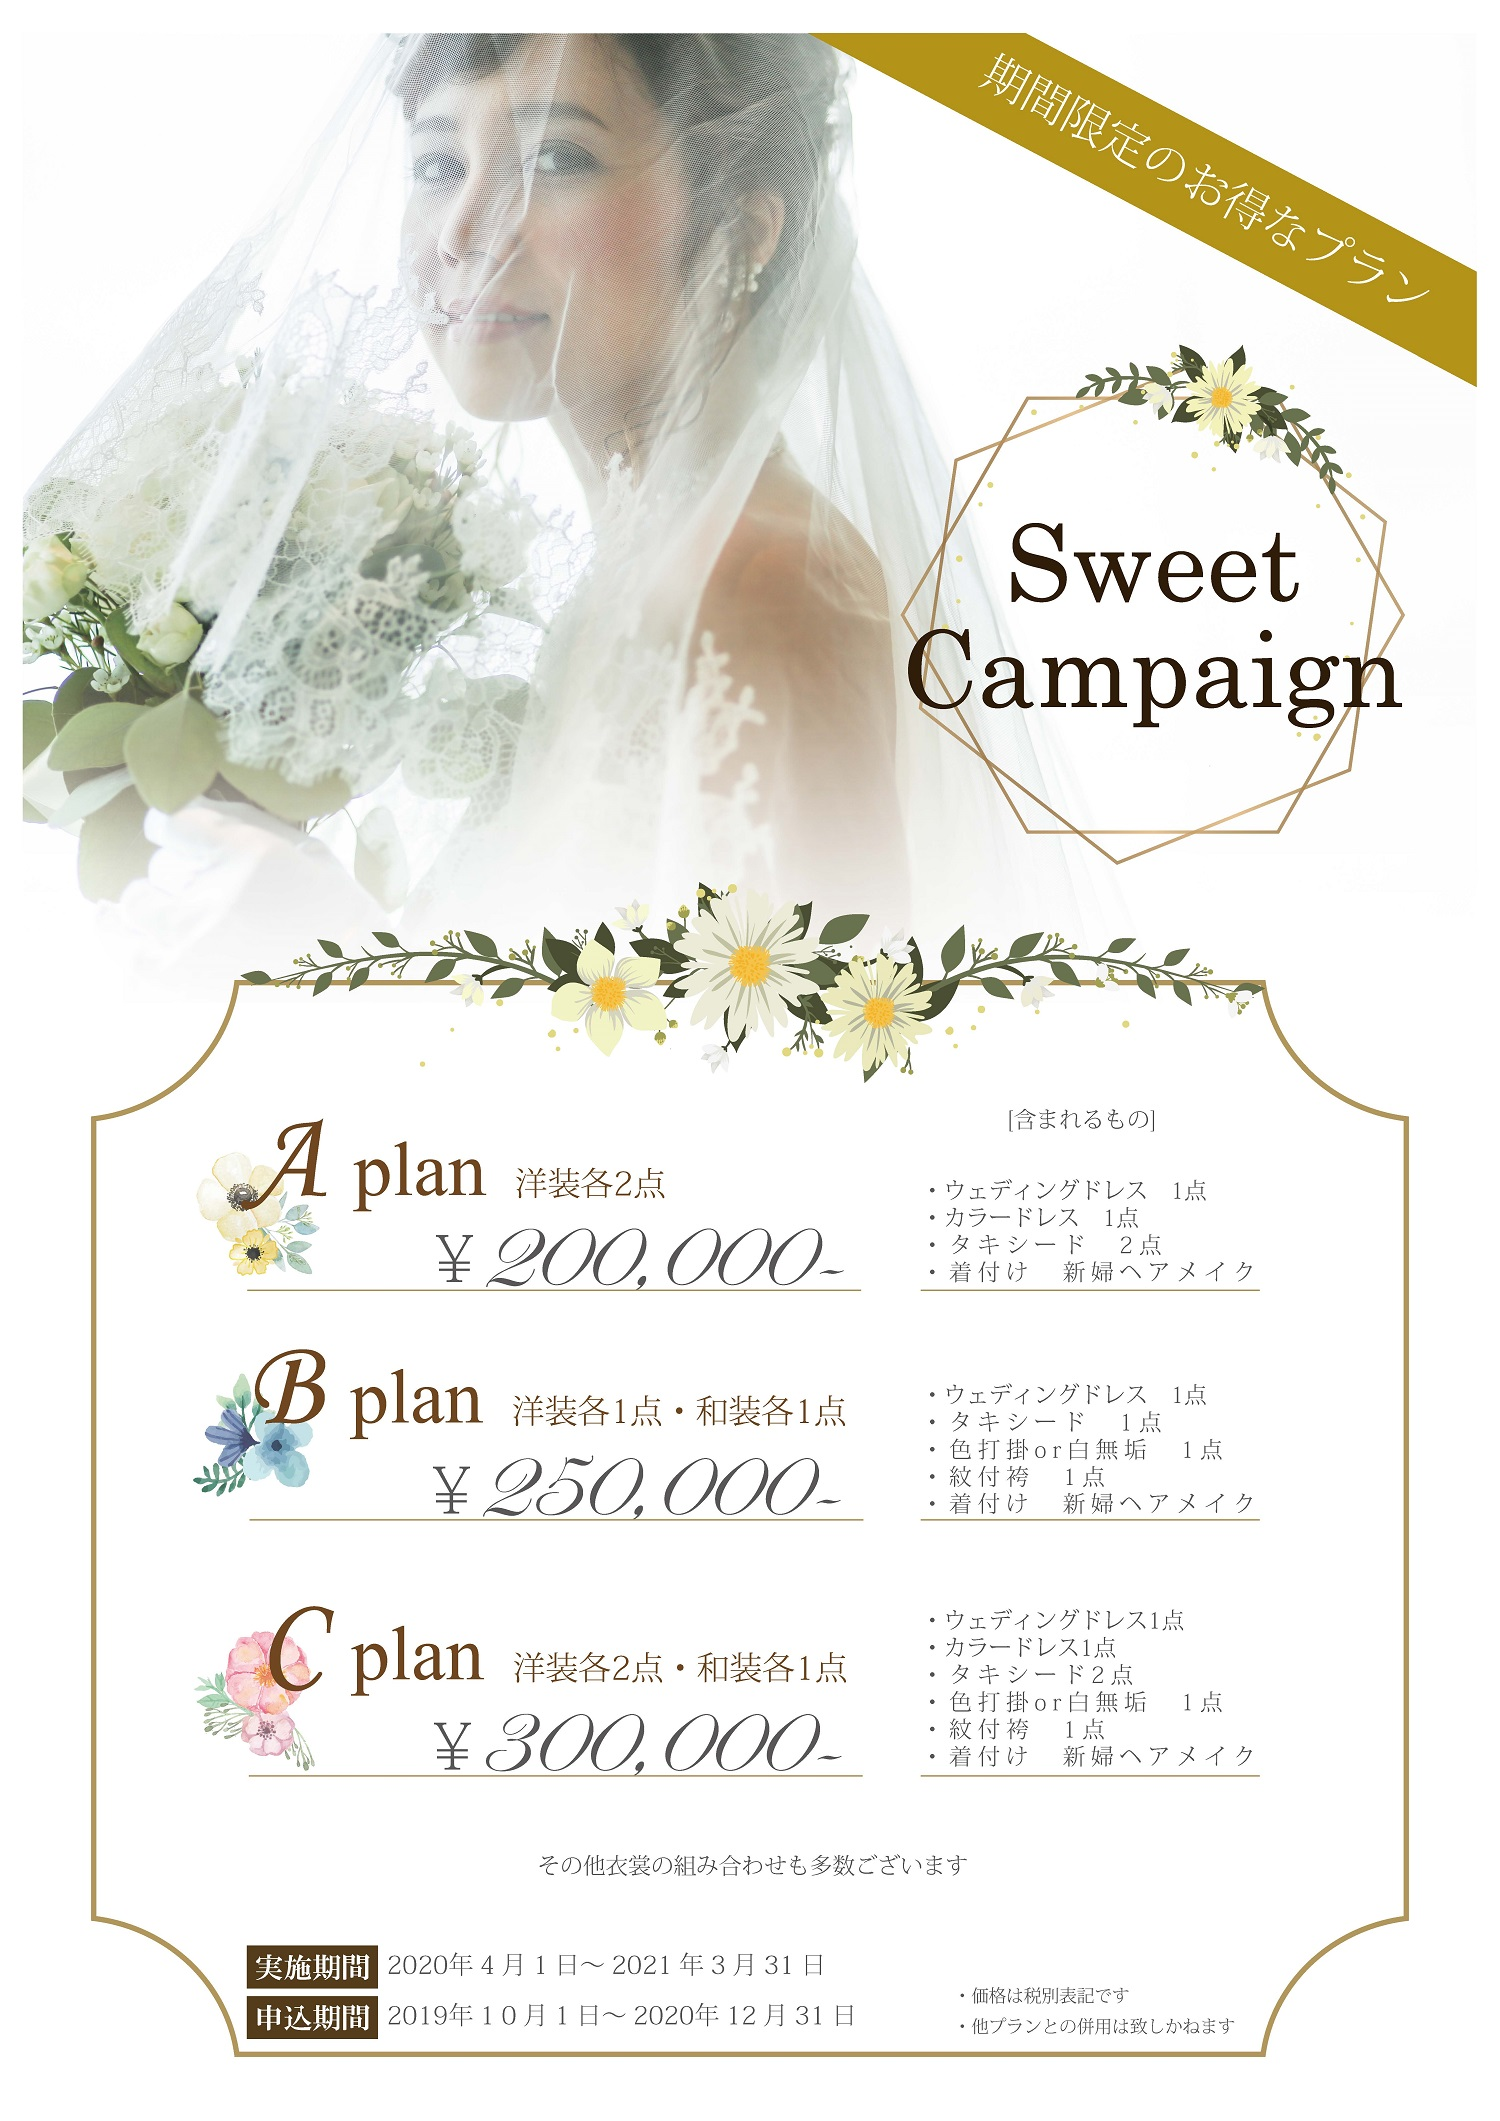 SWEET CAMPAIGN